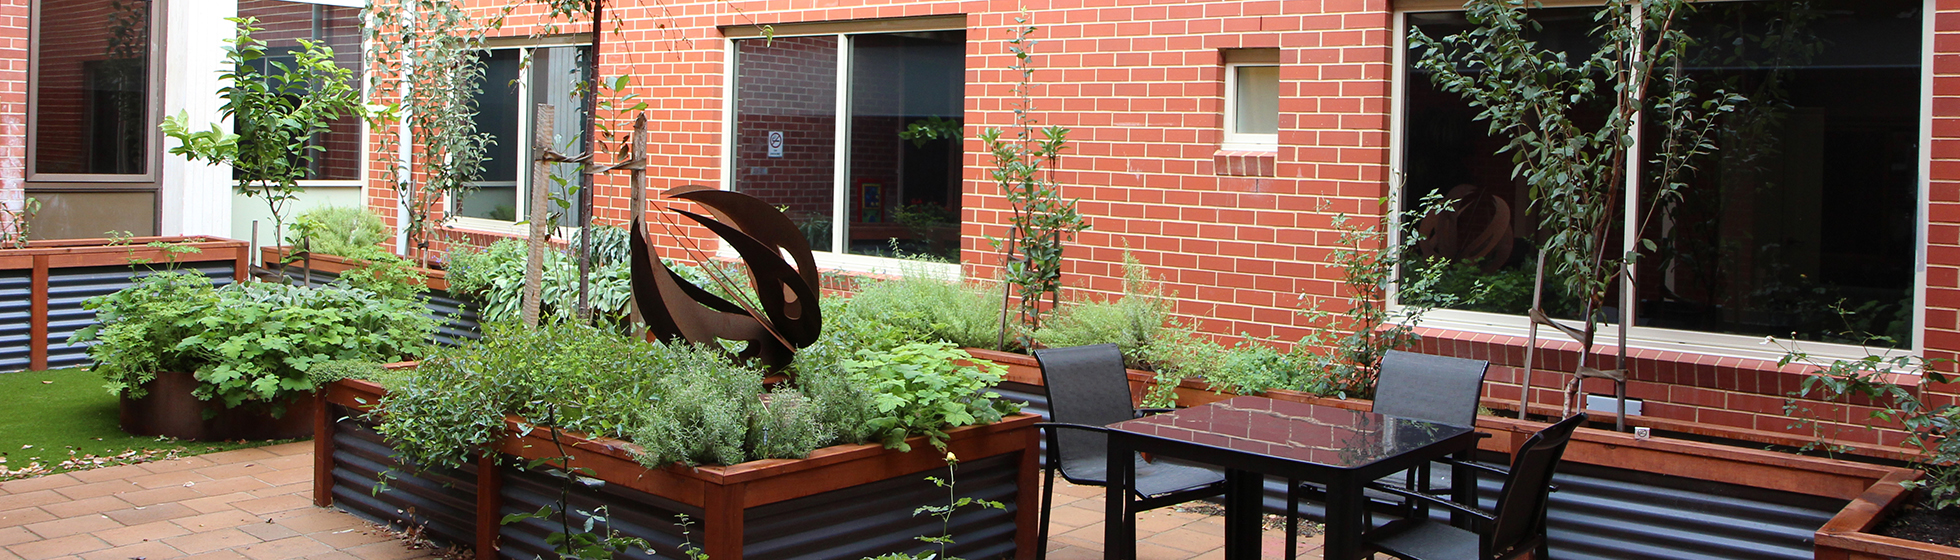 Garden at north adelaide hospital